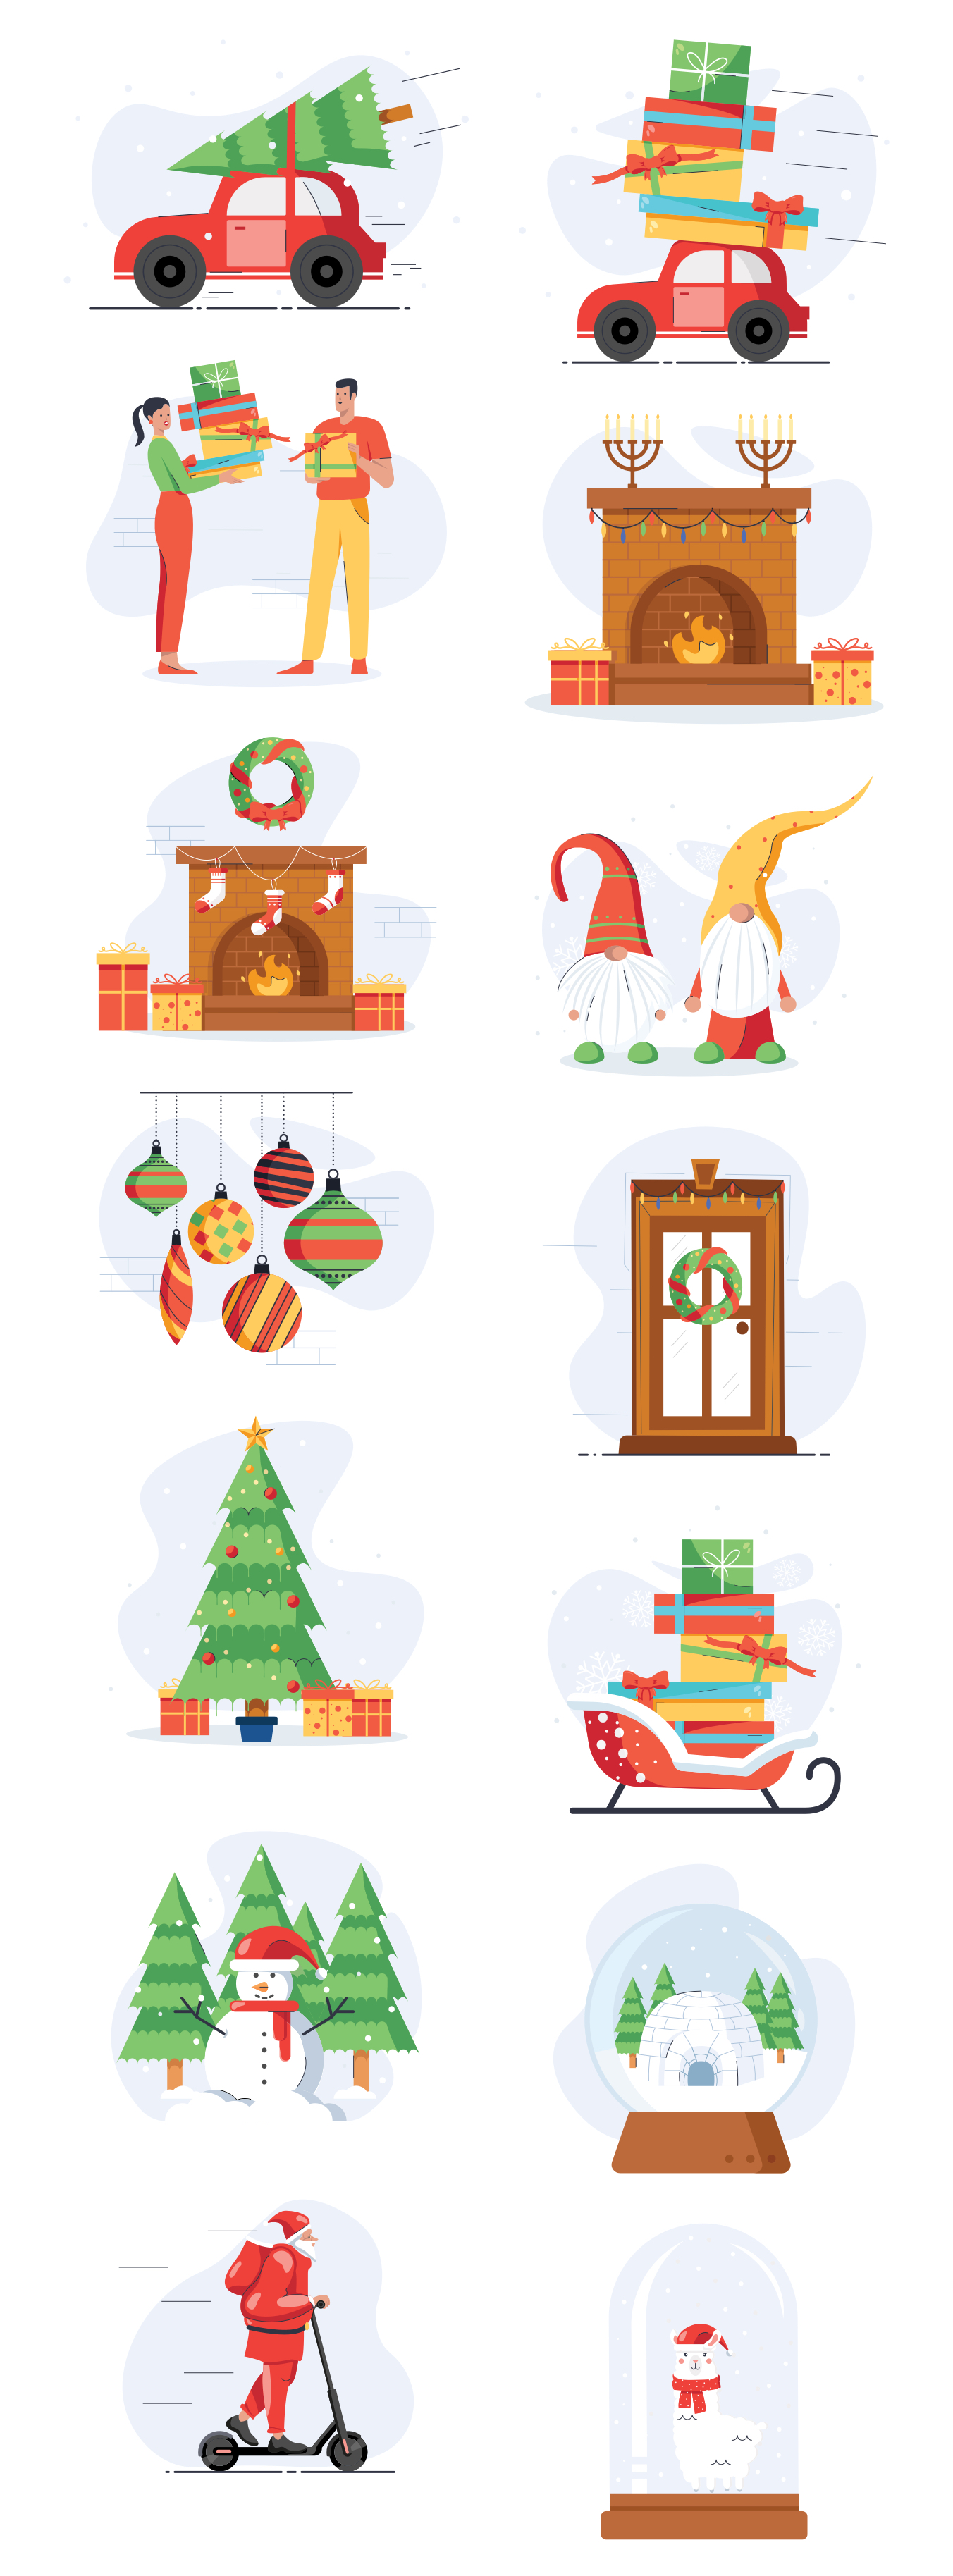 Christmas Free Illustration Pack - High-quality Free Christmas royalty-free Illustration pack that can be used in all designing software like Photoshop, Illustrator, Adobe XD and Sketch for Festival & Days related content in all formats.